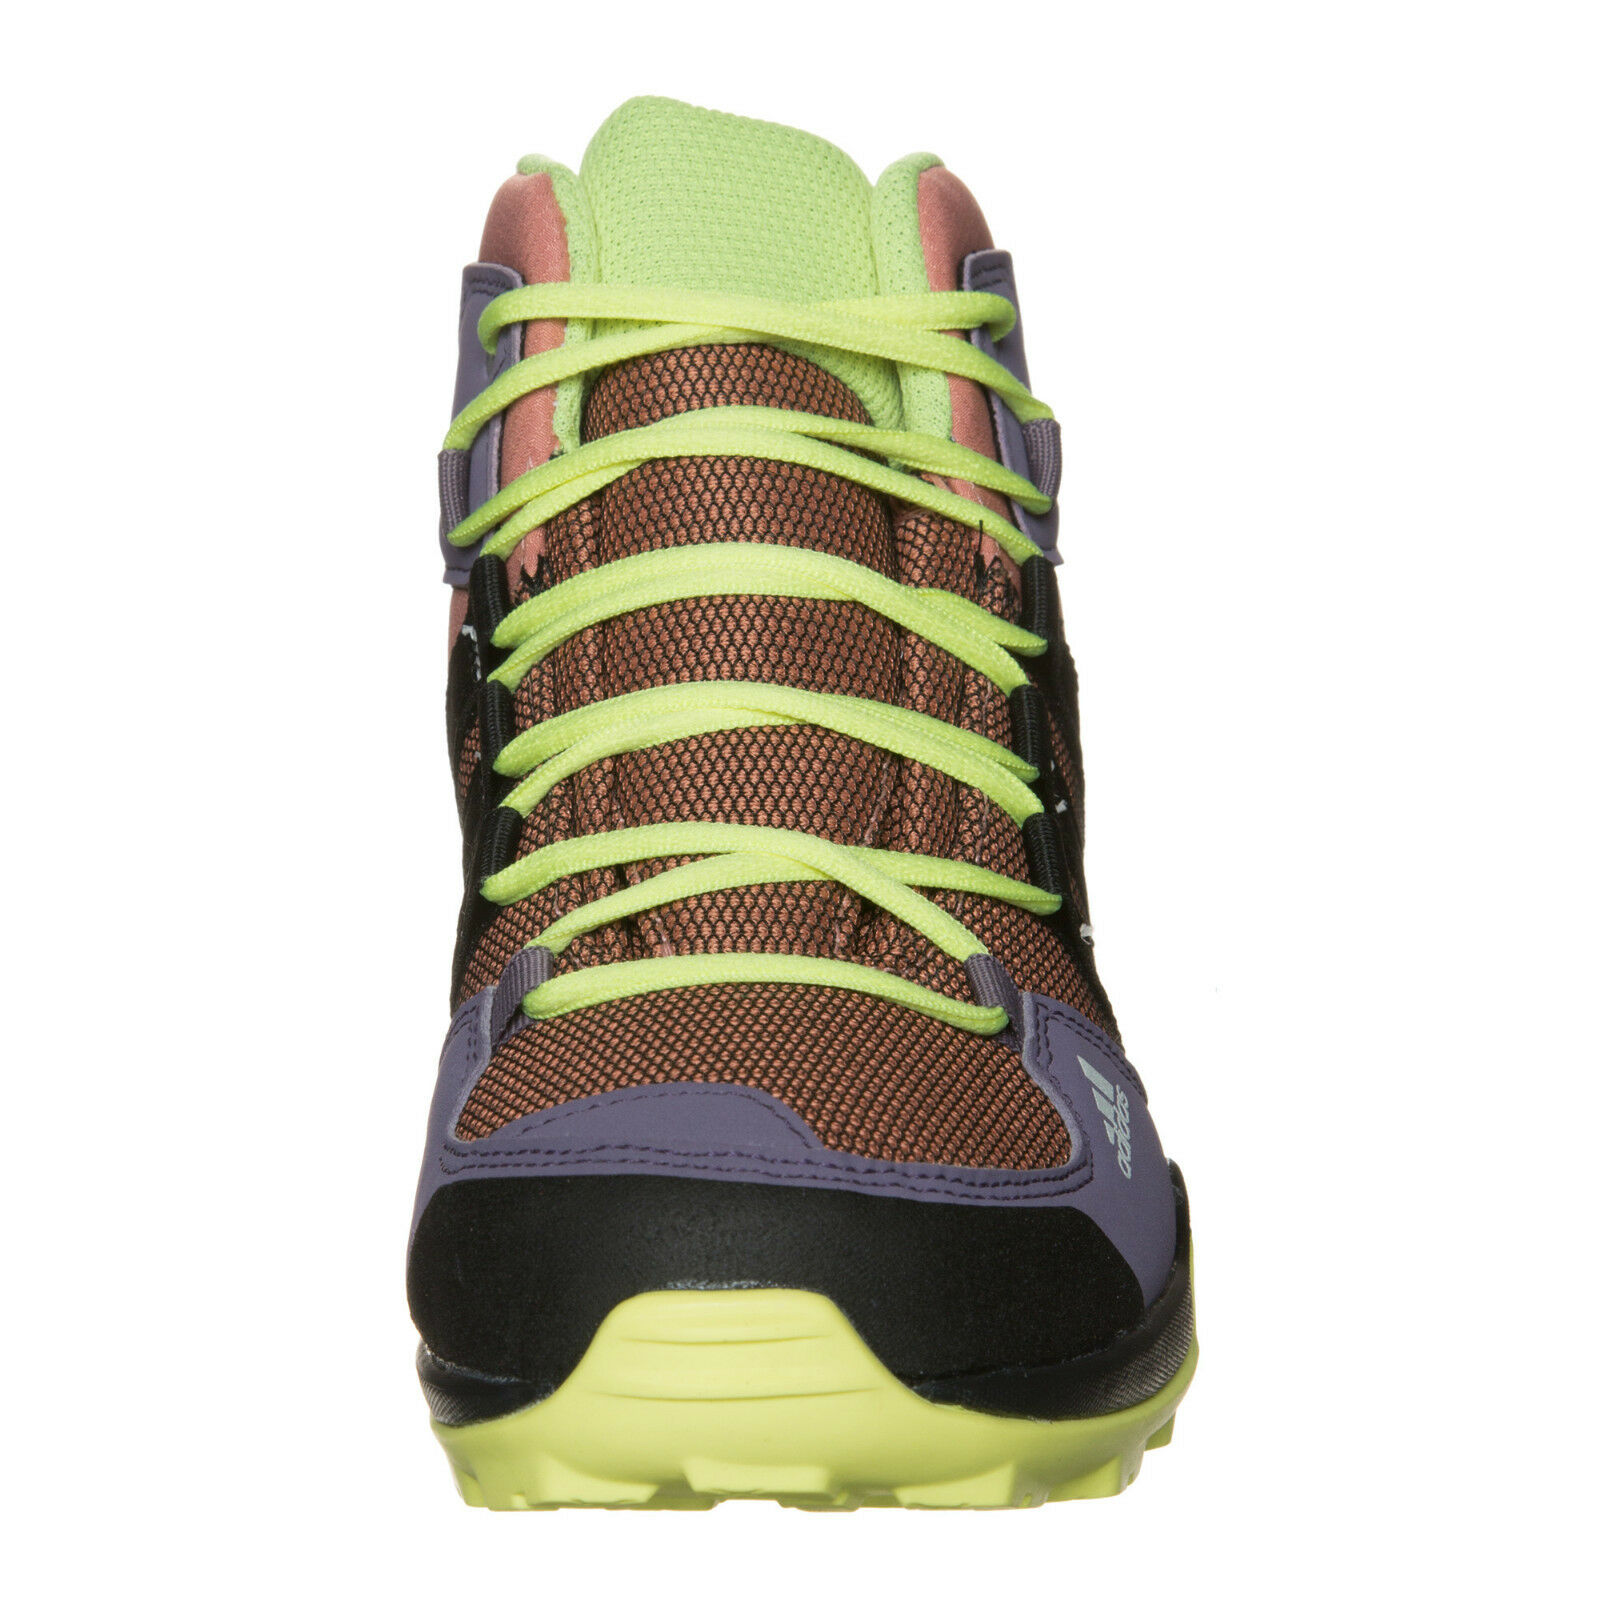 adidas Performance adidas AX2 Mid ClimaProof Outdoorschuh